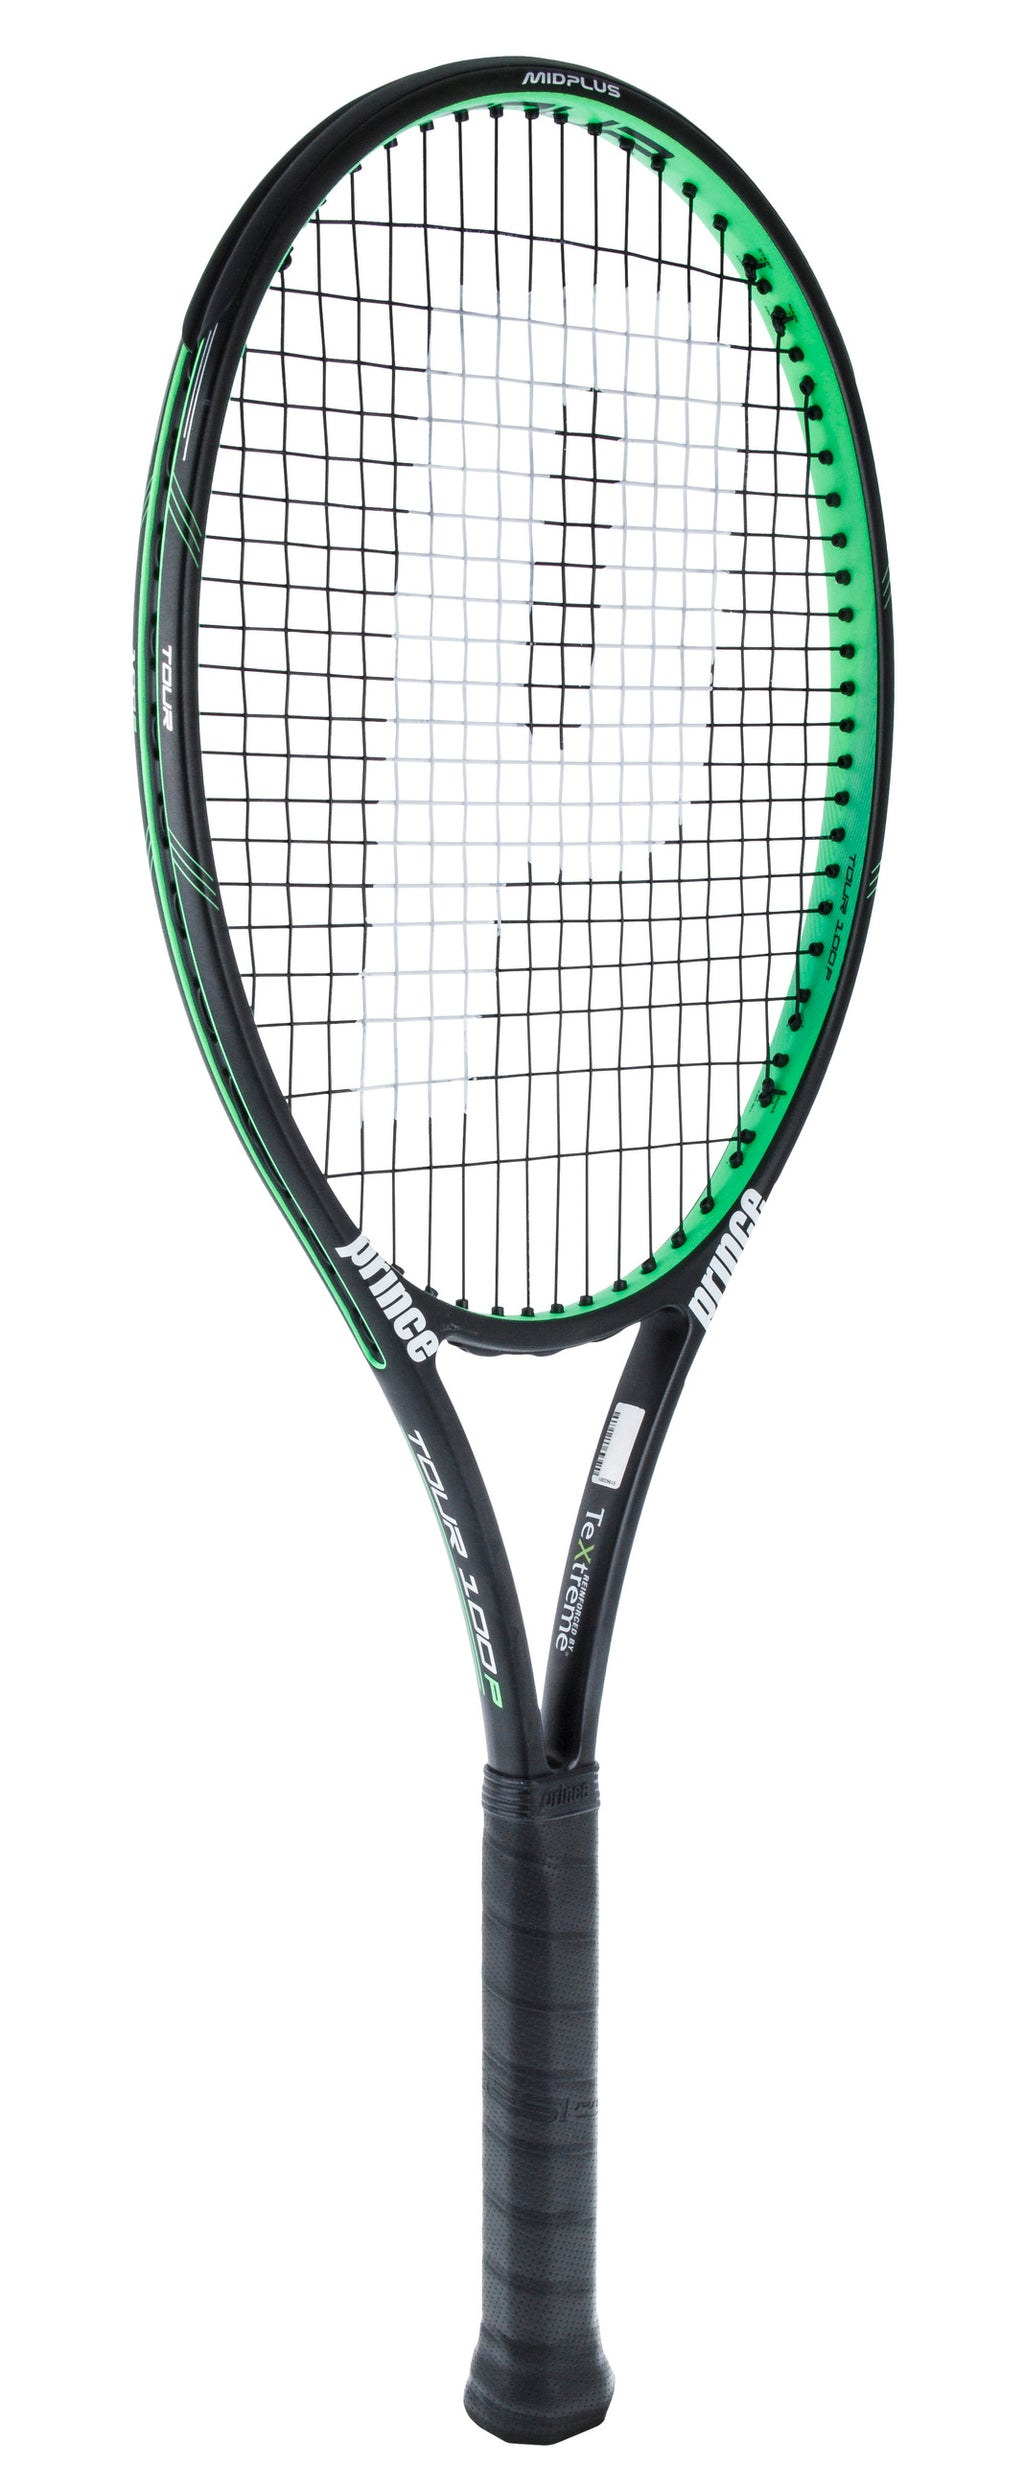 TOUR 100P black/green